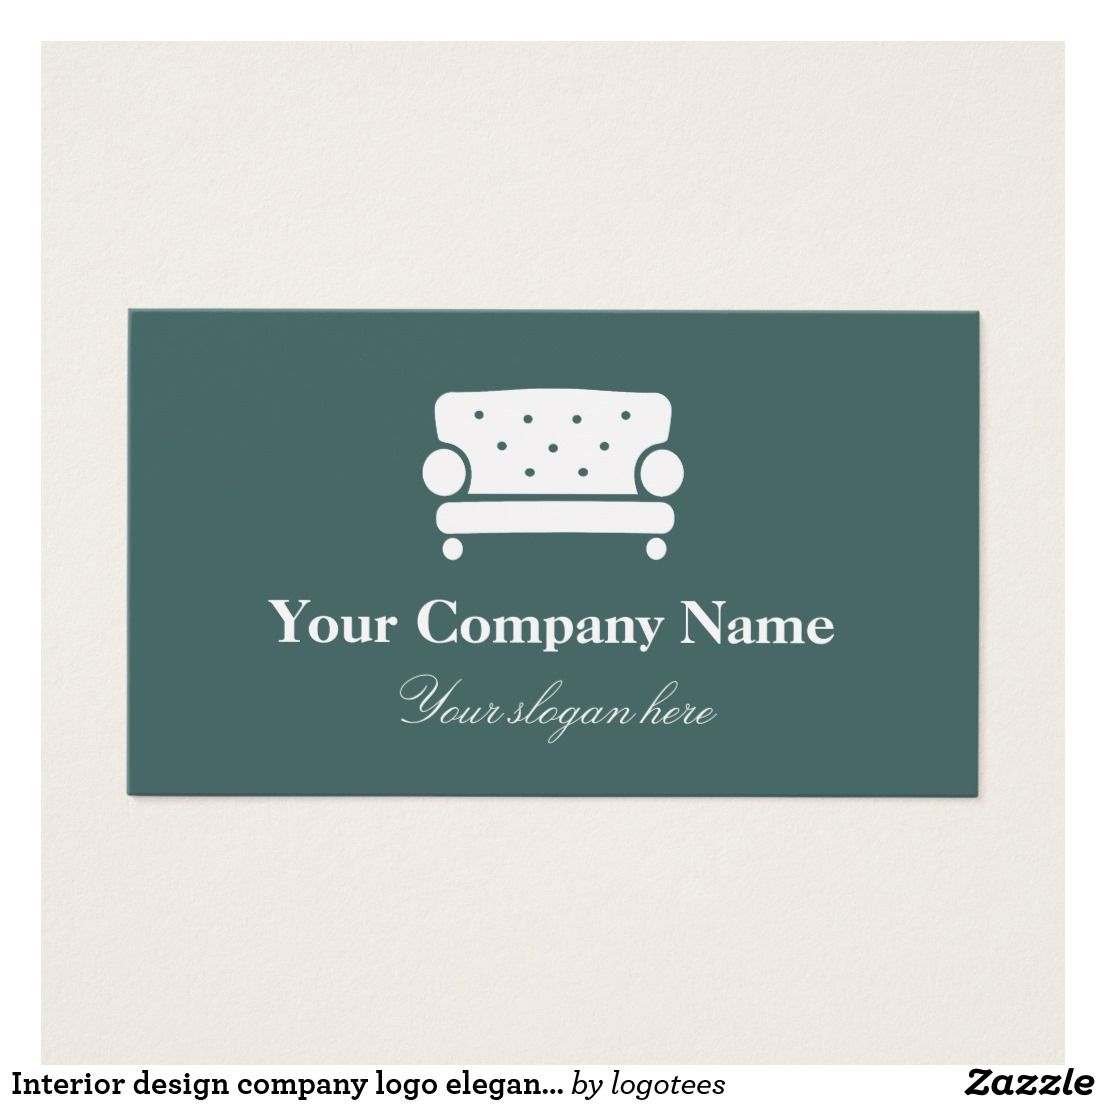 Interior design company logo elegant chair business card